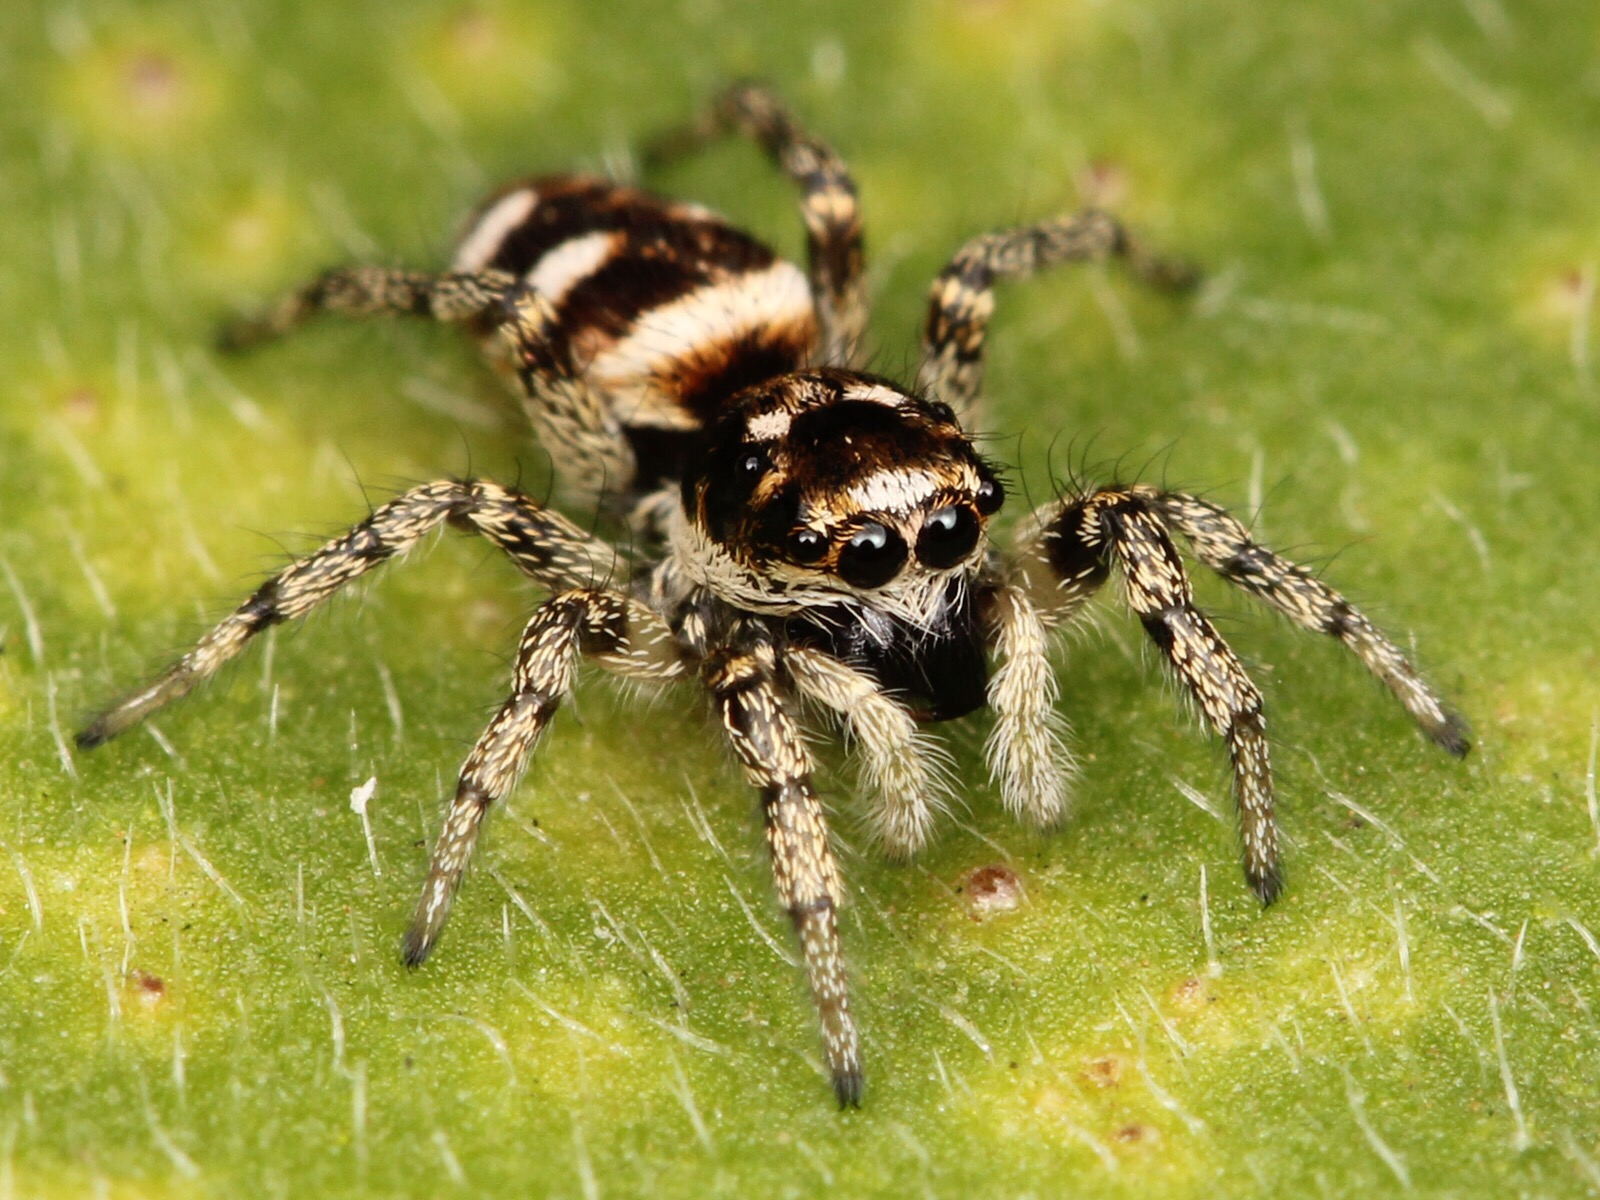 Tlc naturals blog hair beauty care blog of tlc naturals for How to stop spiders coming in your home